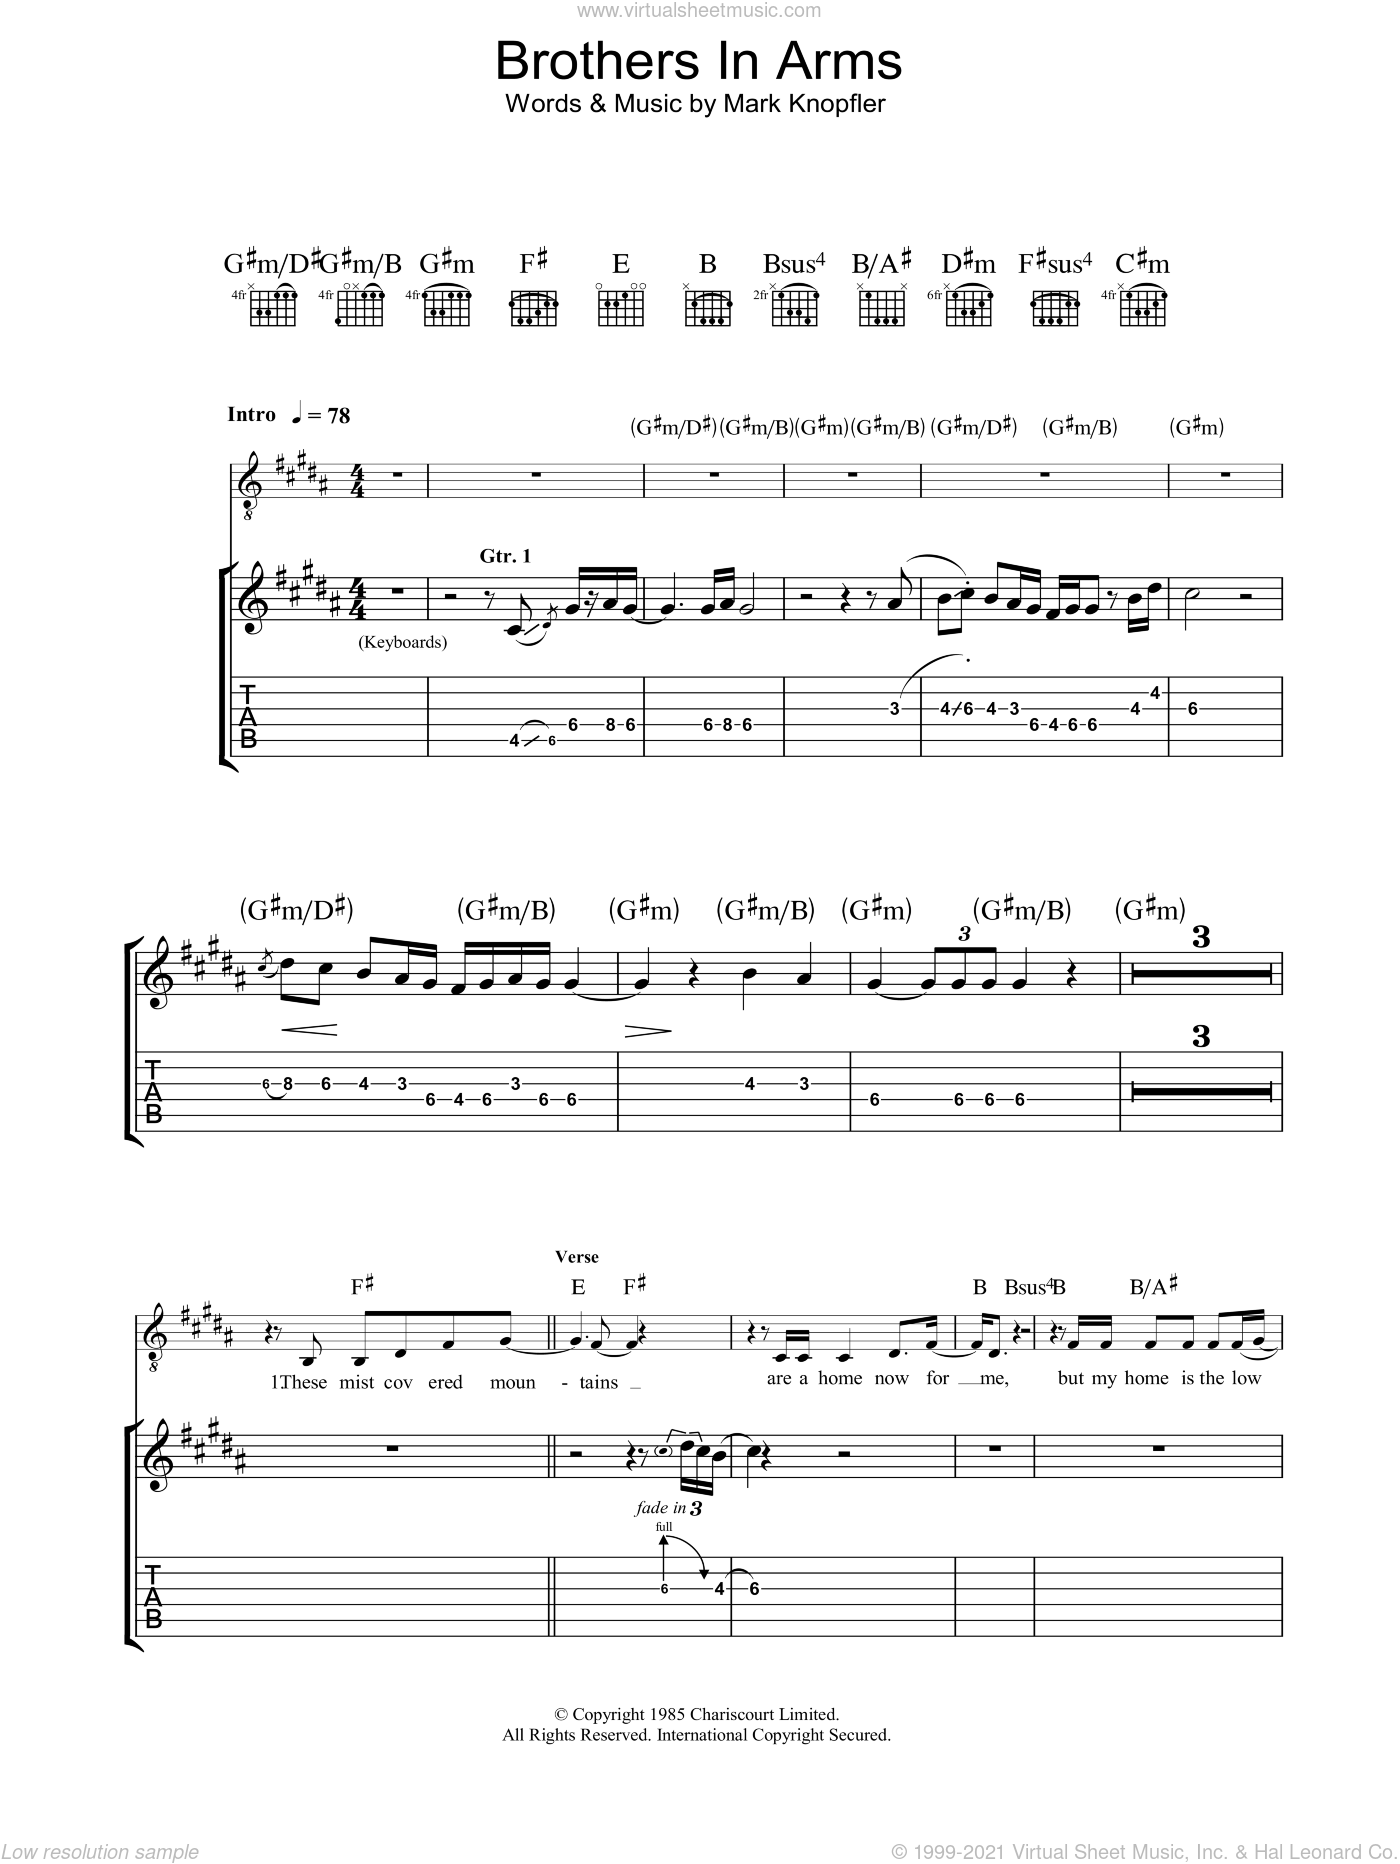 Brothers In Arms sheet music for guitar (tablature) by Mark Knopfler